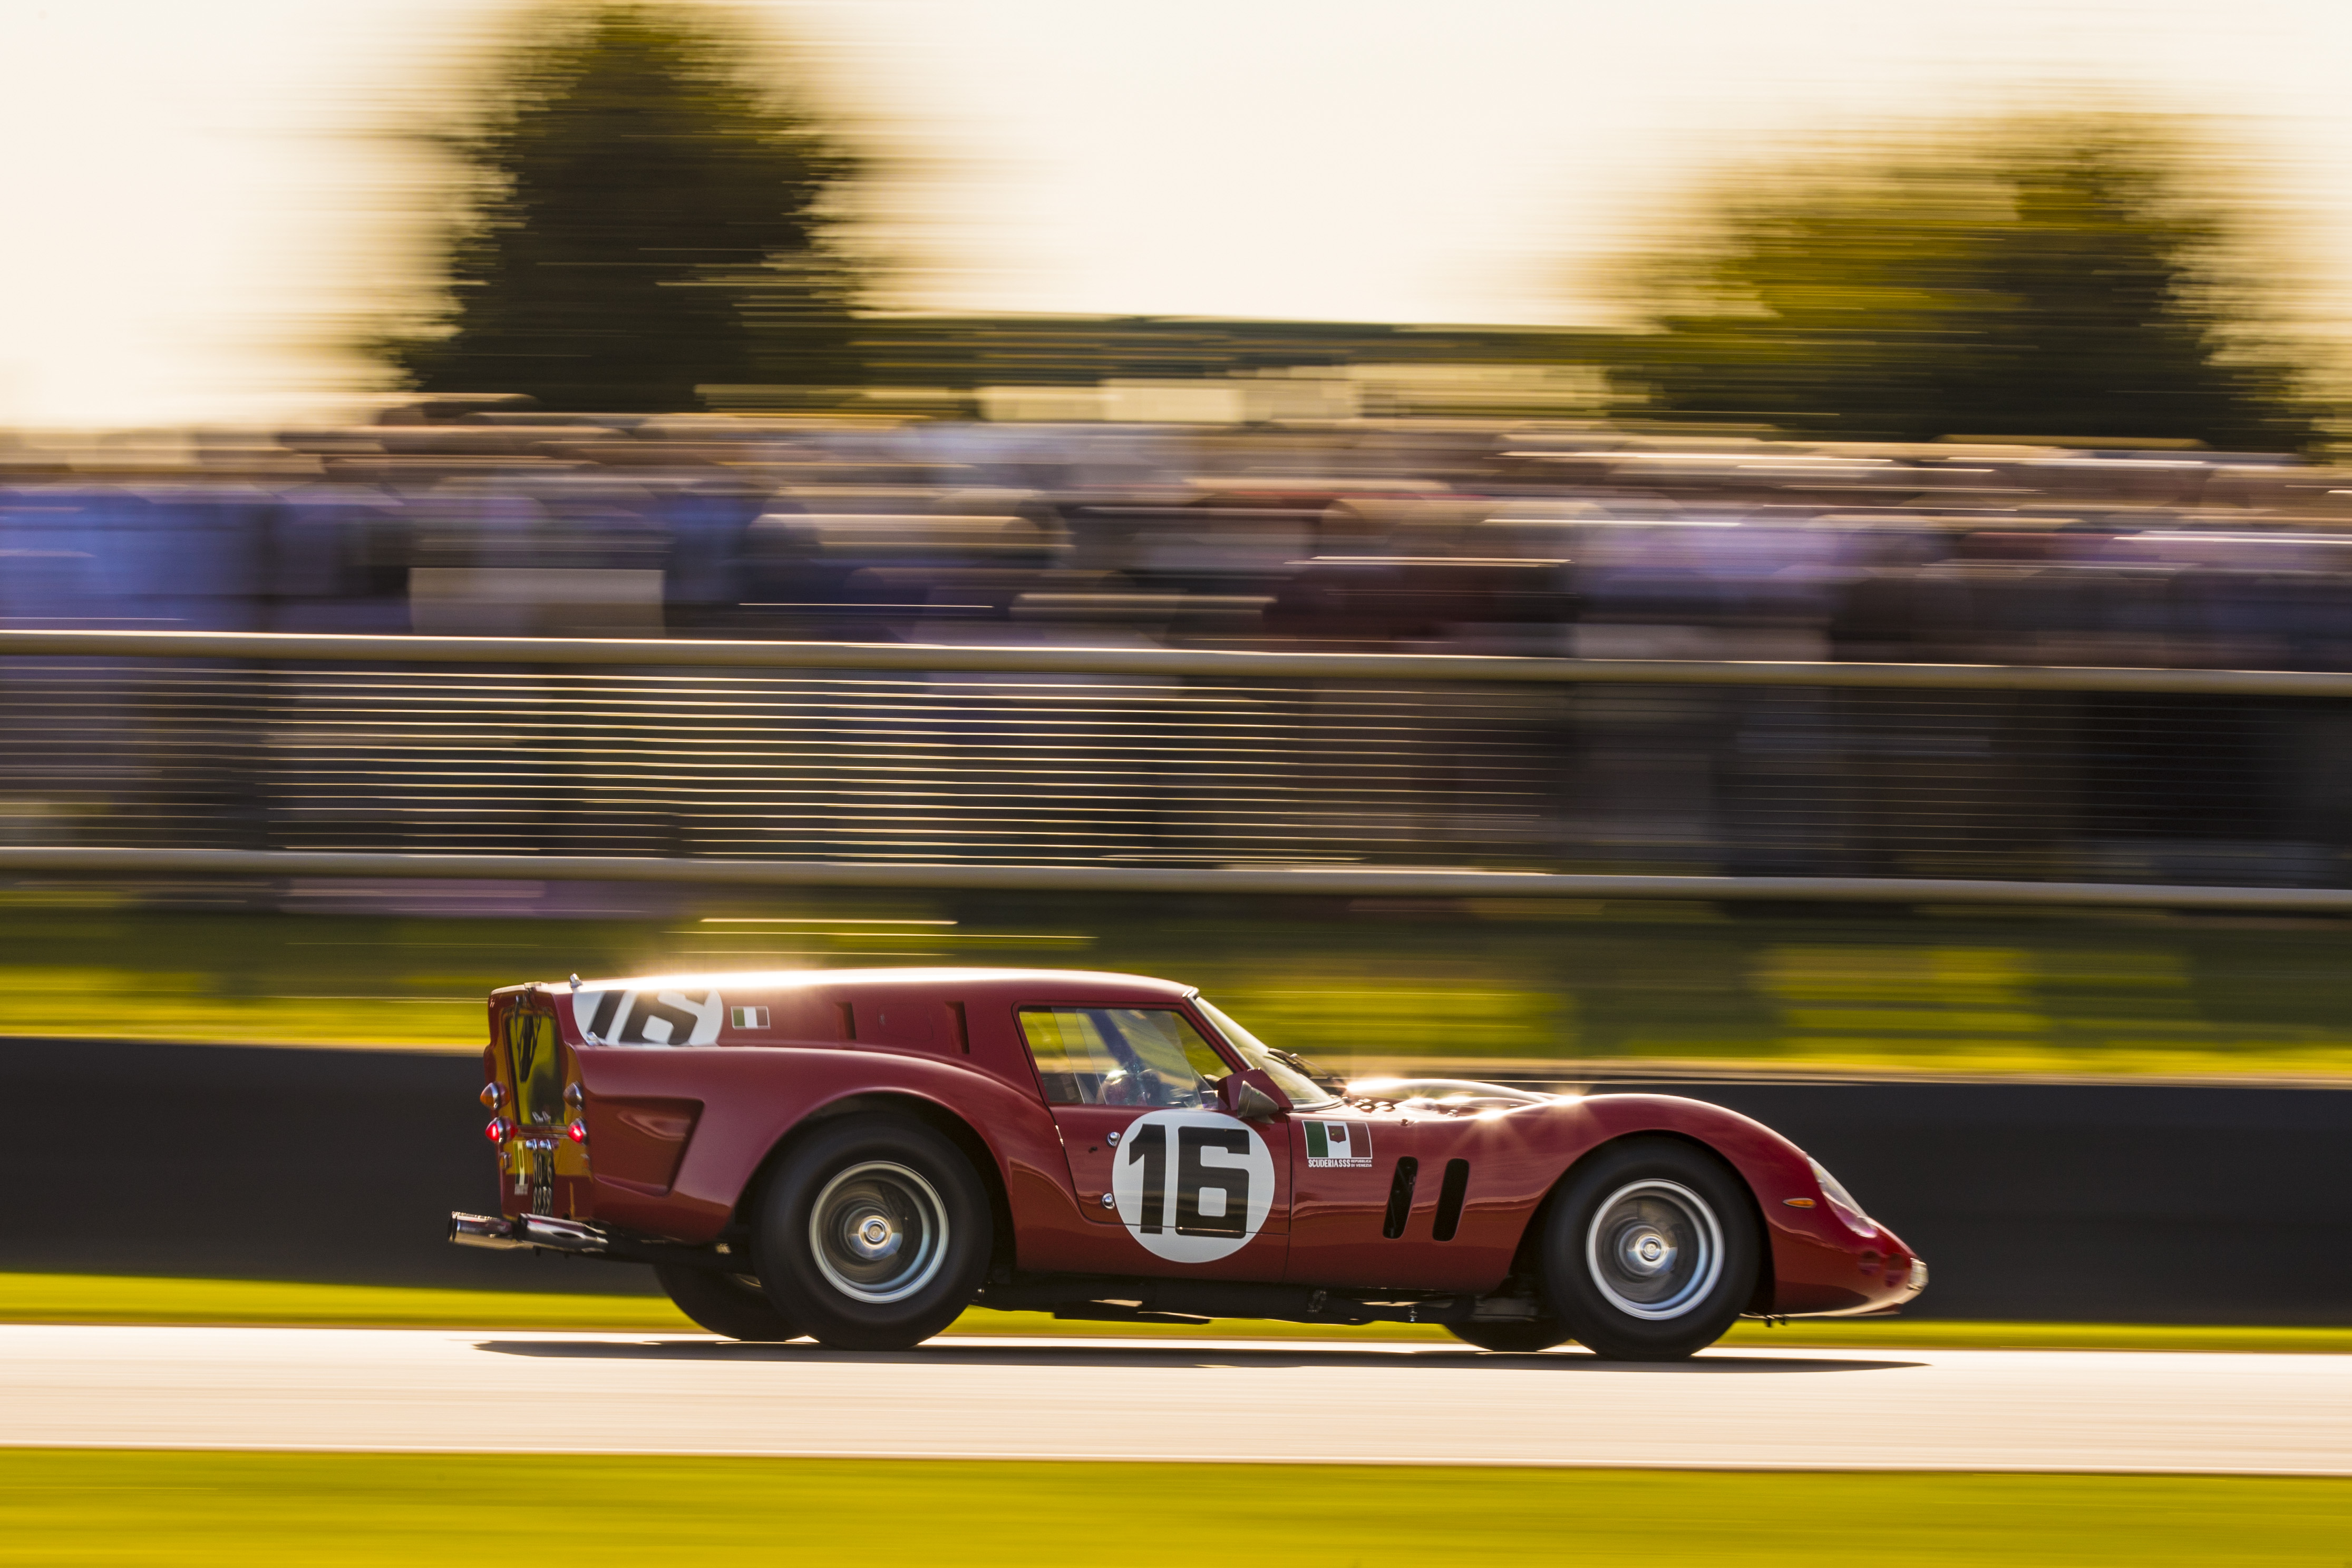 The Kinrara Trophy: The most expensive race ever!